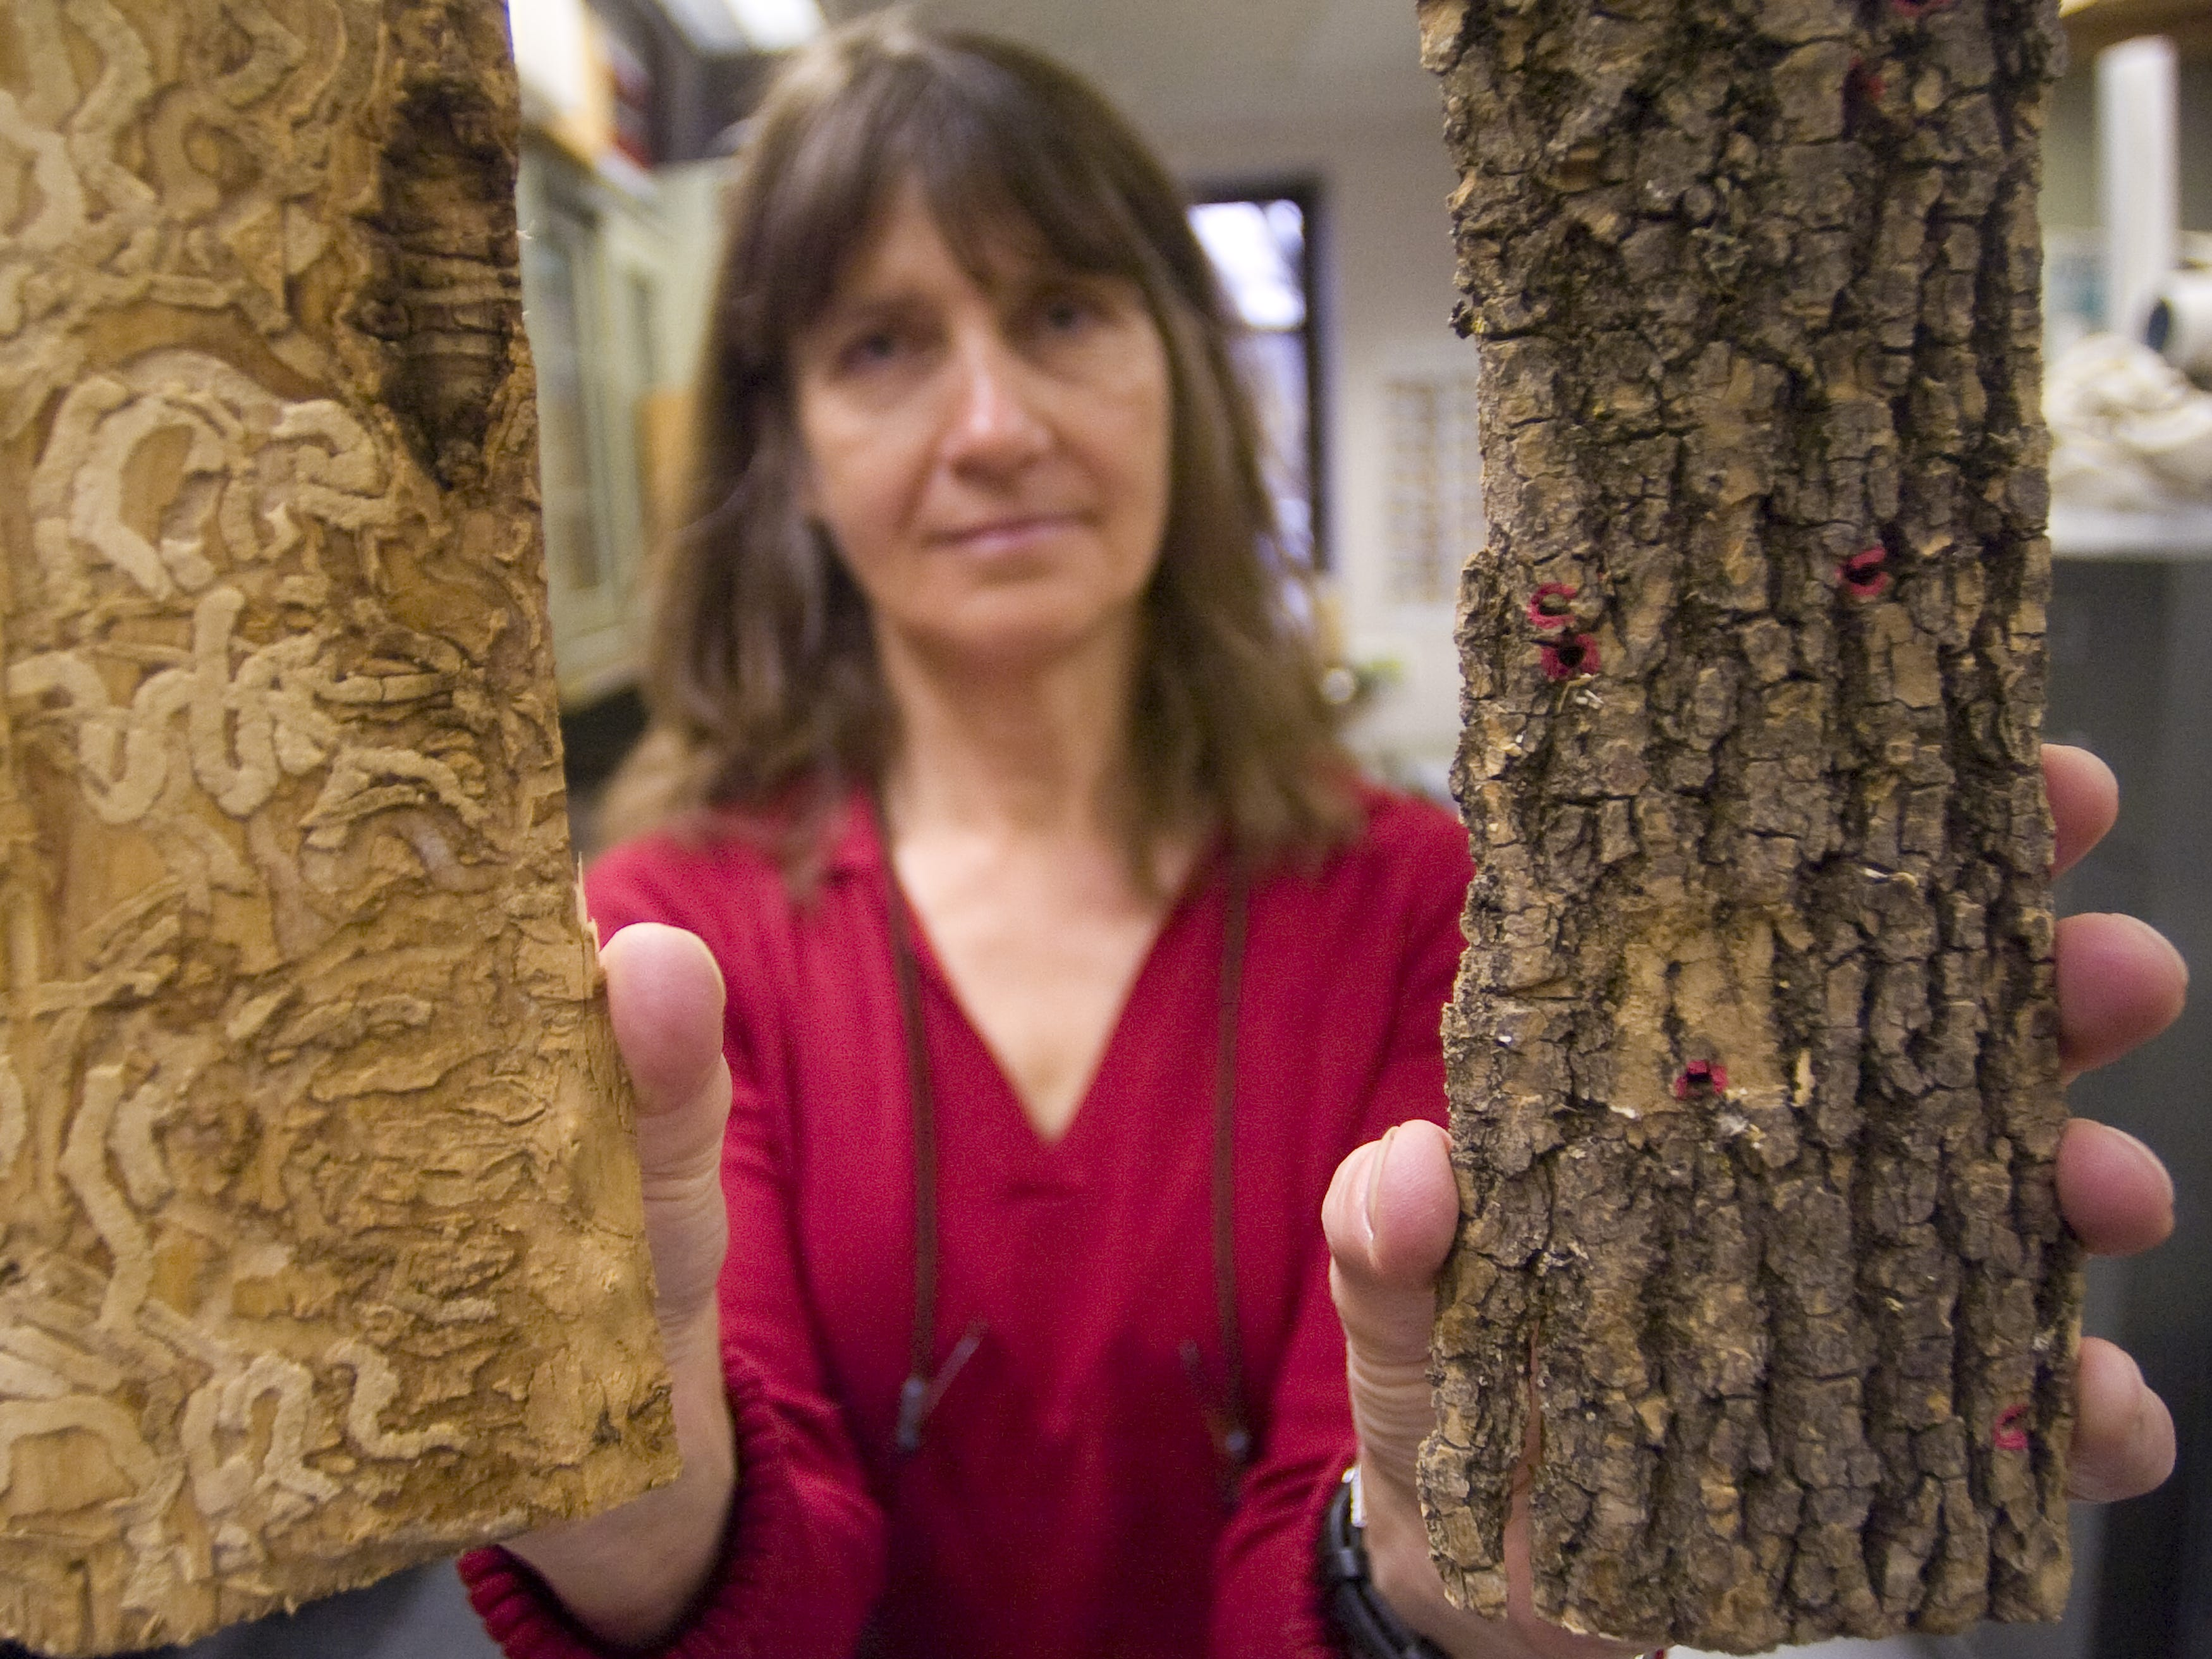 """Trish Hanson, a forest entomologist for the Vermont Department of Forests, Parks and Recreation, holds up samples of ash wood (bark, right; interior """"galleries"""" at left), each with telltale signs of emerald ash borer damage, on April 13, 2011."""